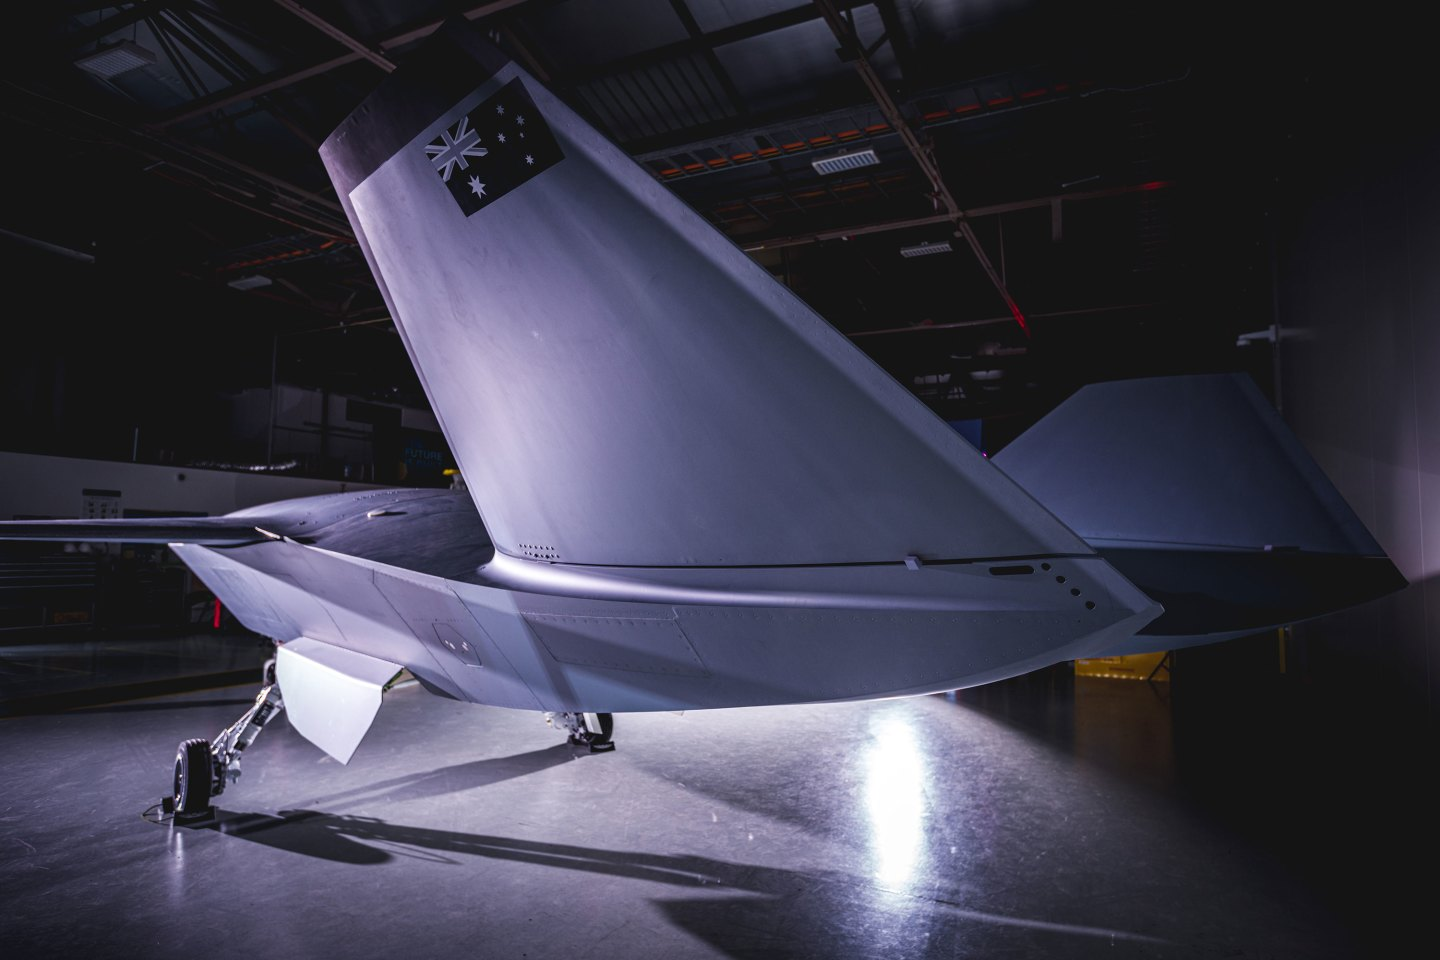 The jet-powered Loyal Wingman is a 38-ft-long (11.7-m) combat drone aimed at the global market